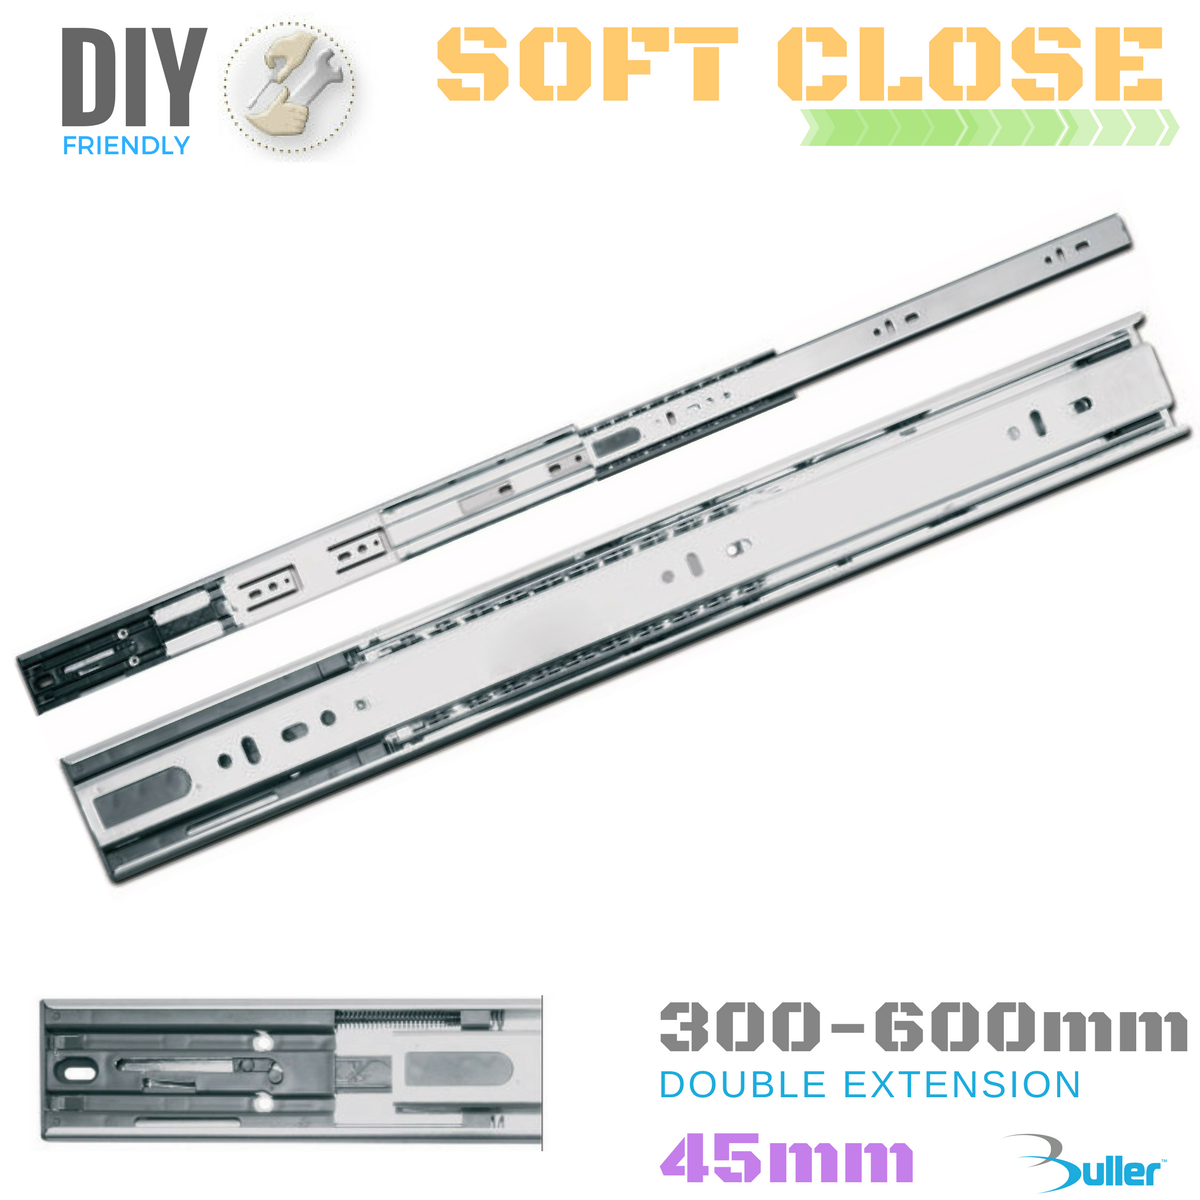 Drawer Runner Slide   Soft-Close   45mm    Full Extension   30kg Größes 300-600mm